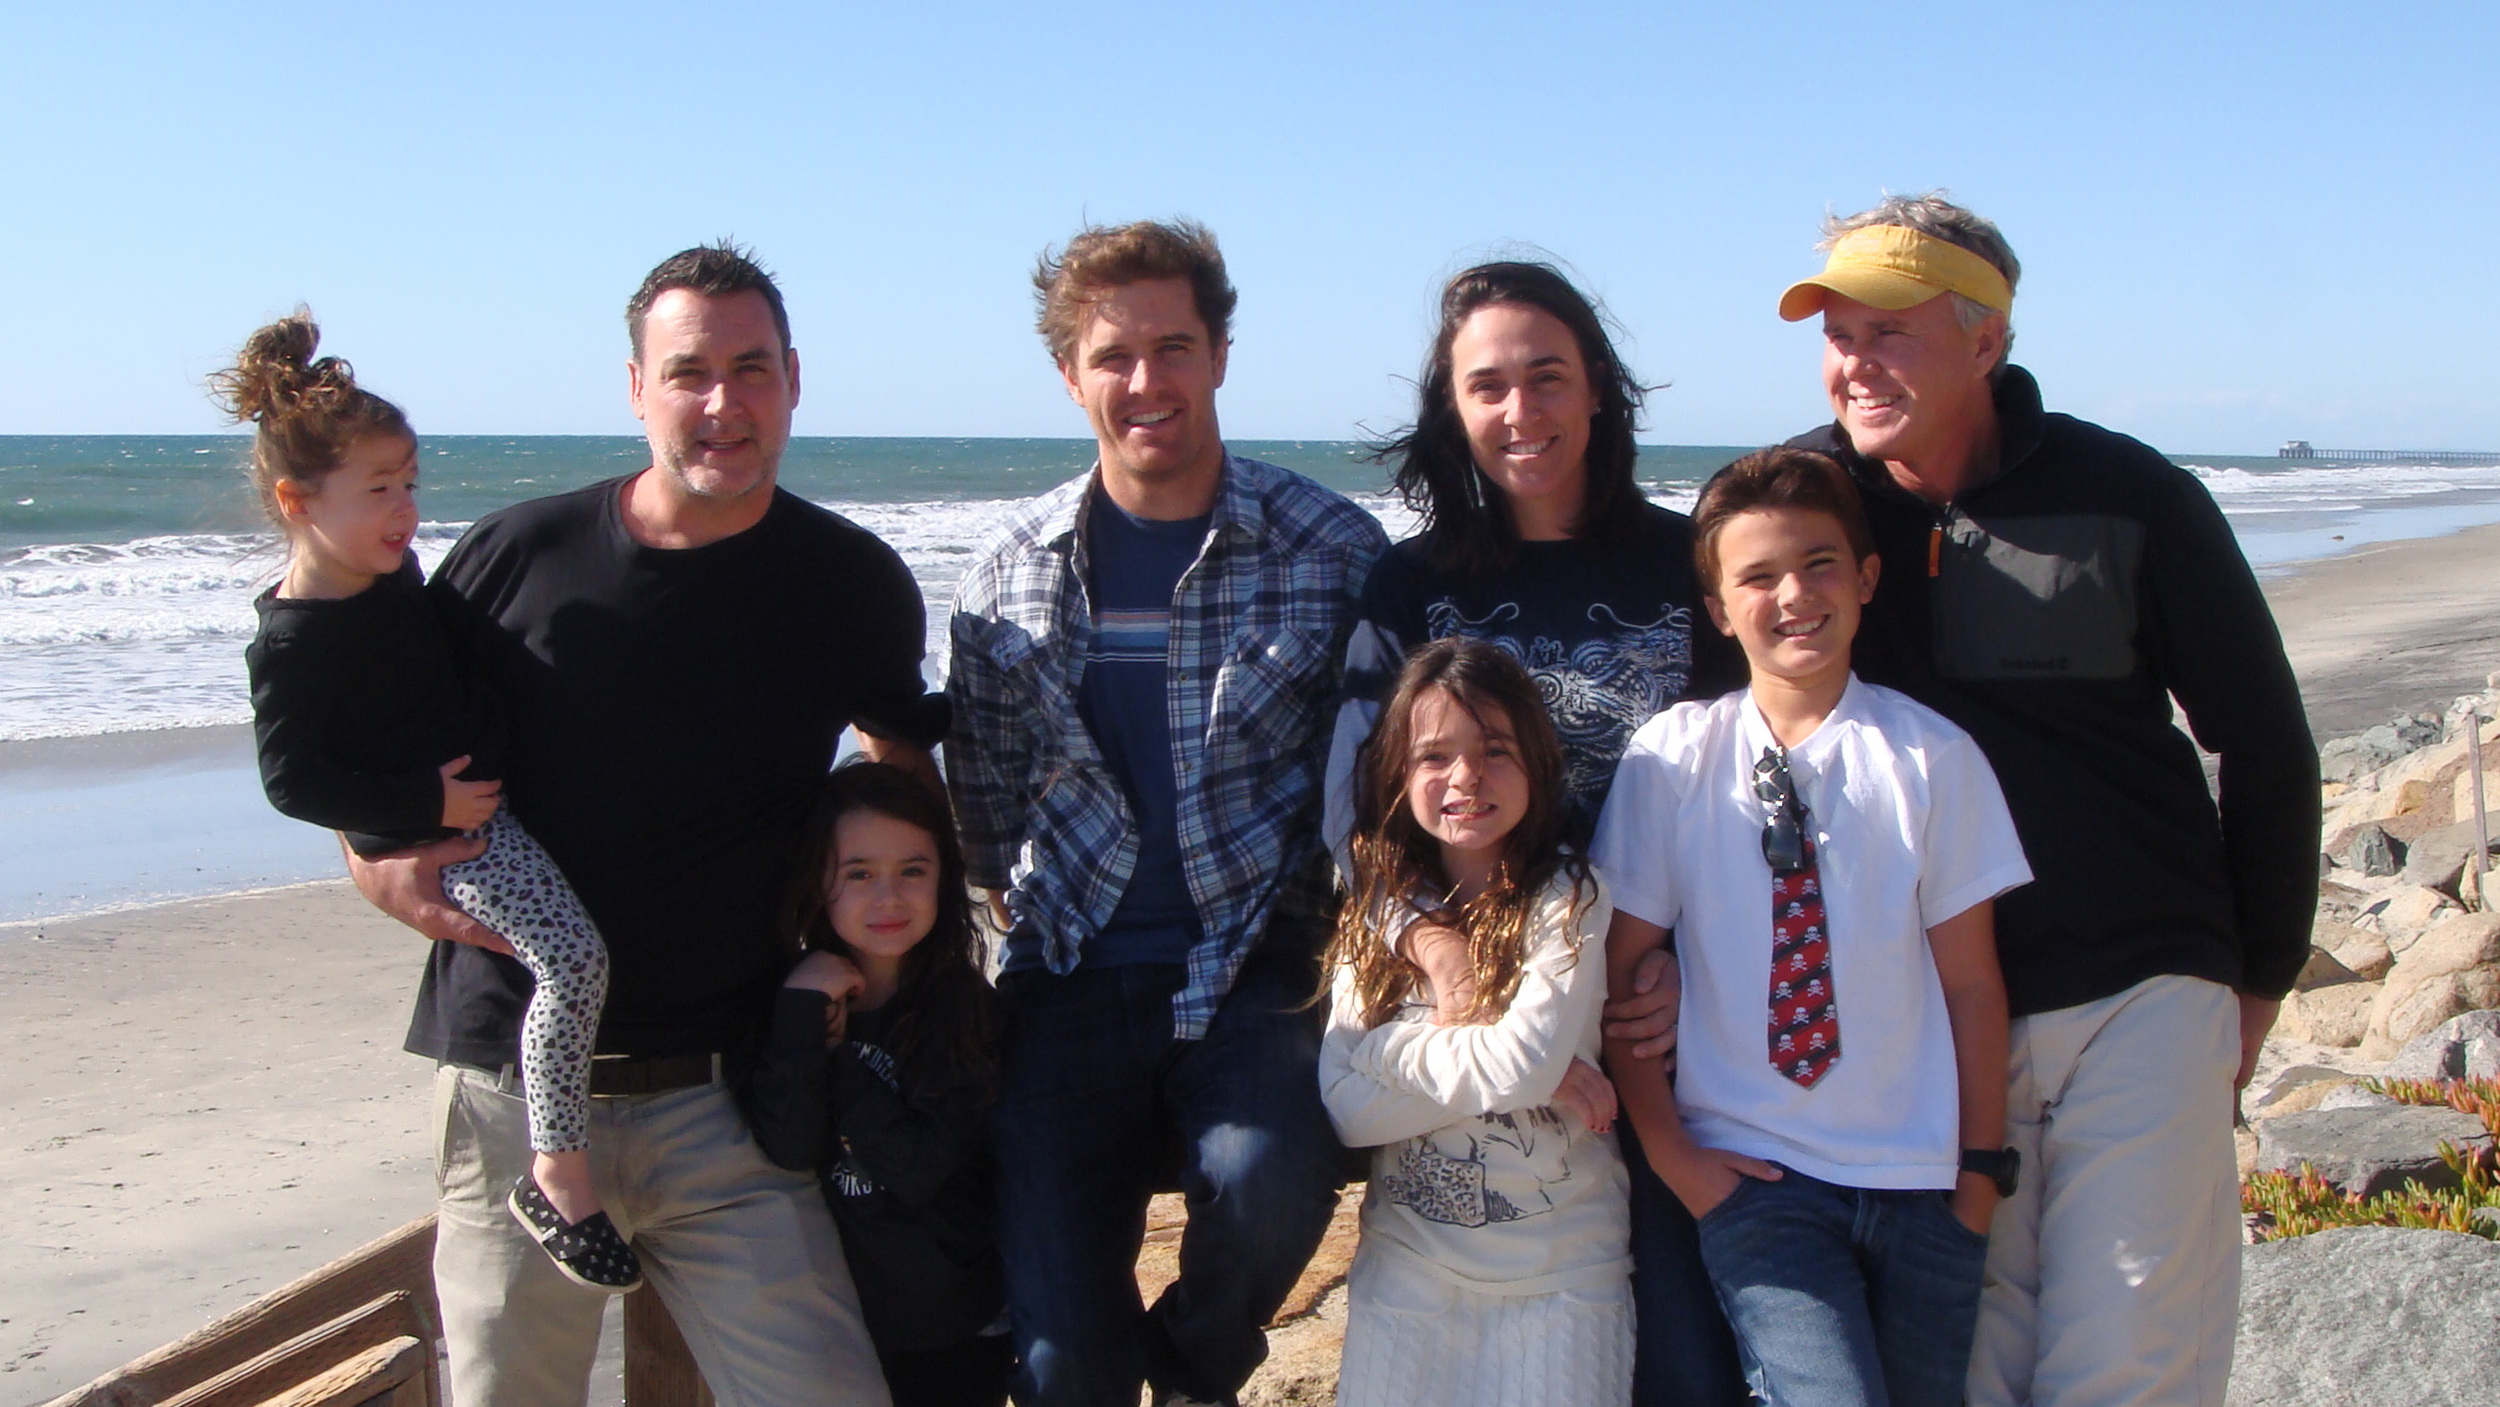 The OH YES! Family - Founders Dr. Emily Sikking and Dr. Chip Milam at right with their two children.